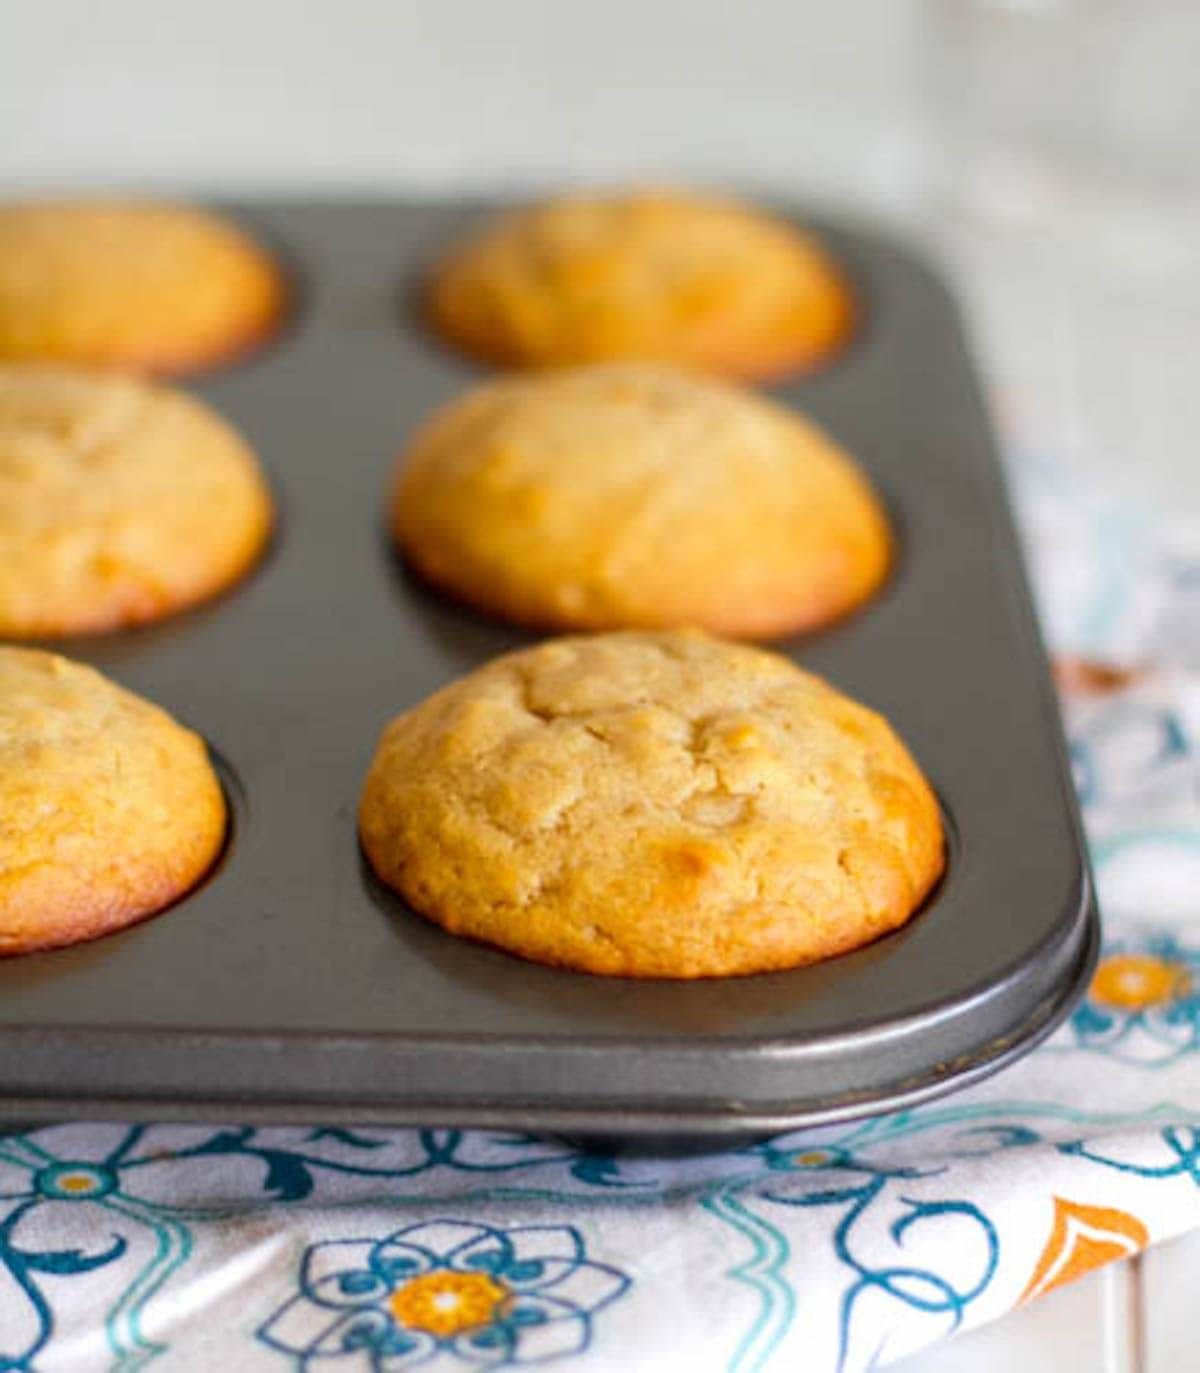 Peanut butter and honey muffins in a tin.